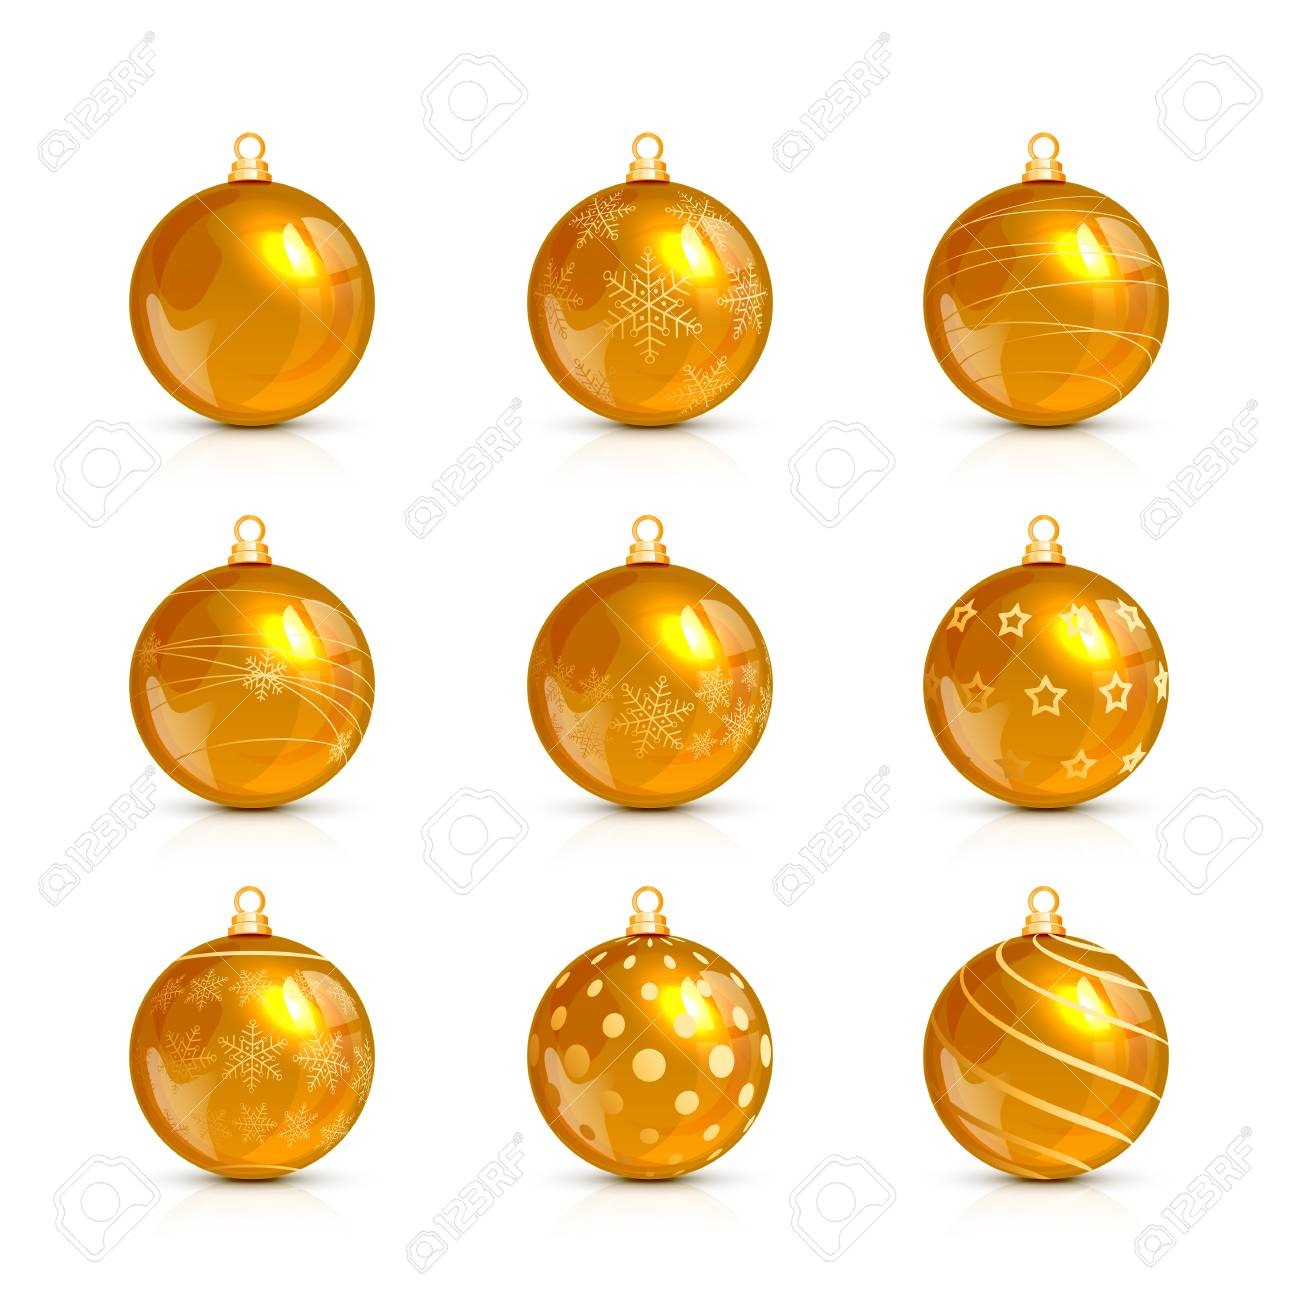 Set Of Decorative Golden Christmas Balls With Holiday Pattern ...